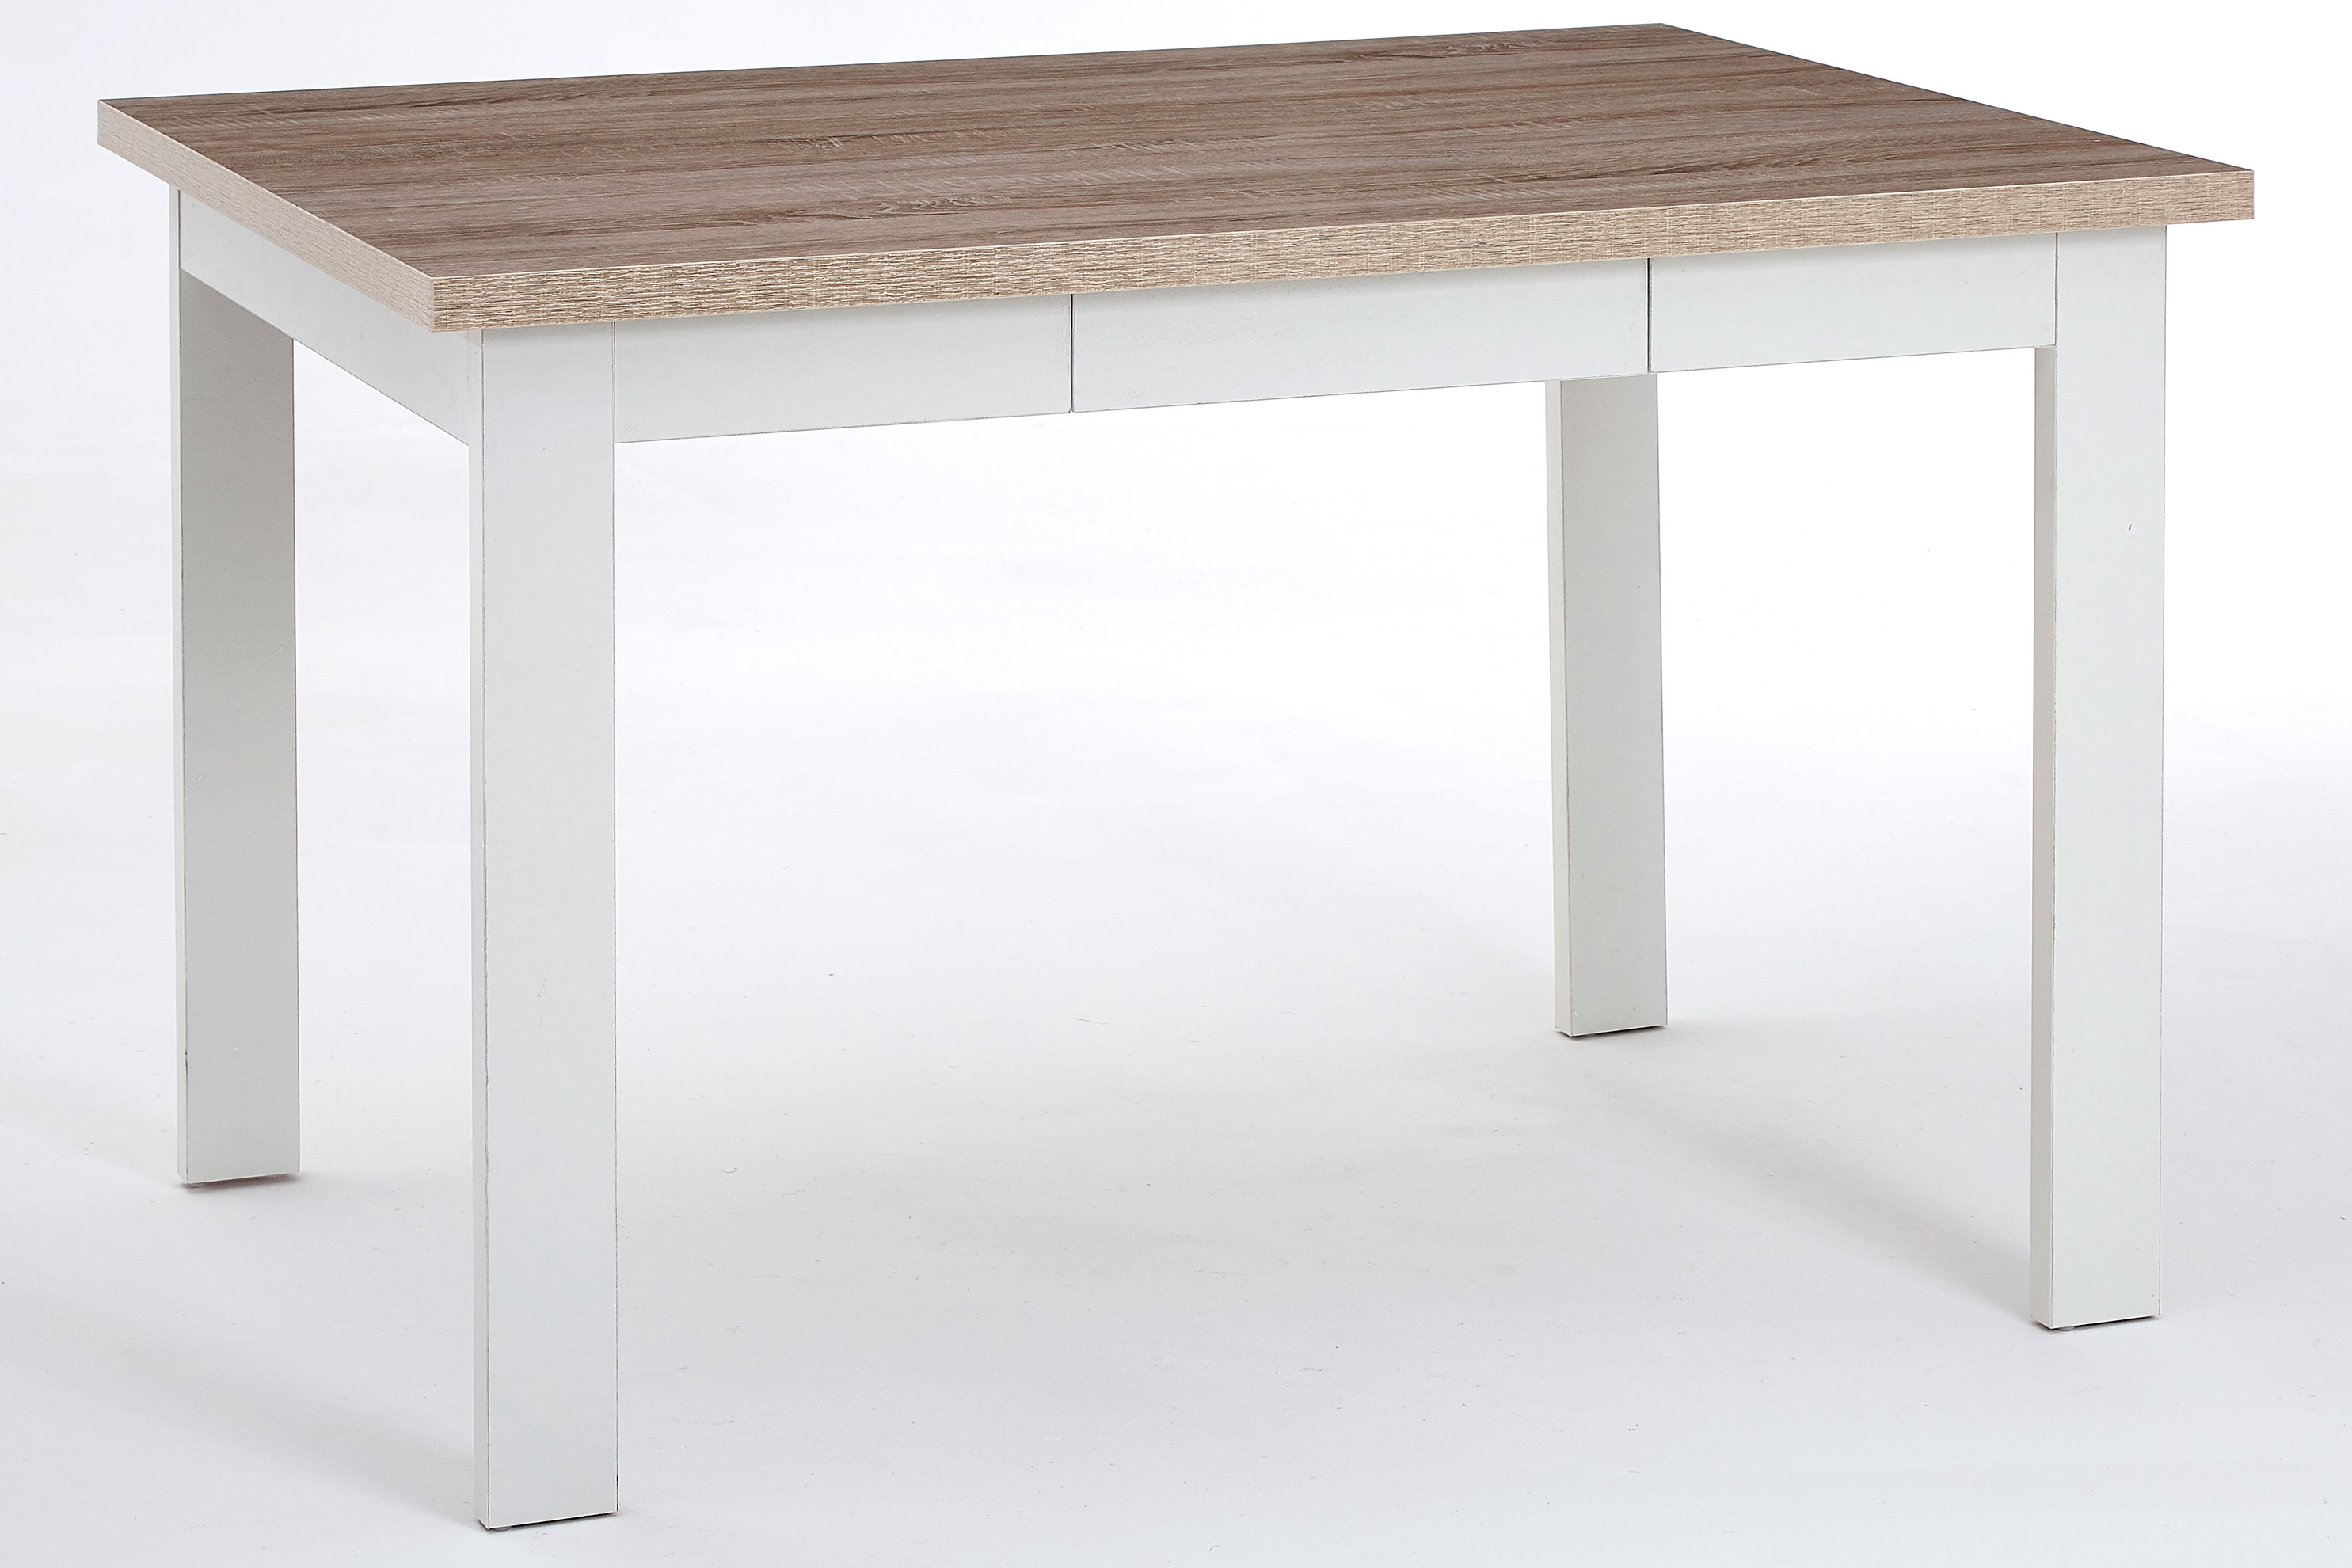 St Ives Large Dining Table Traditional Oak Veneer White Finish Space 6 People